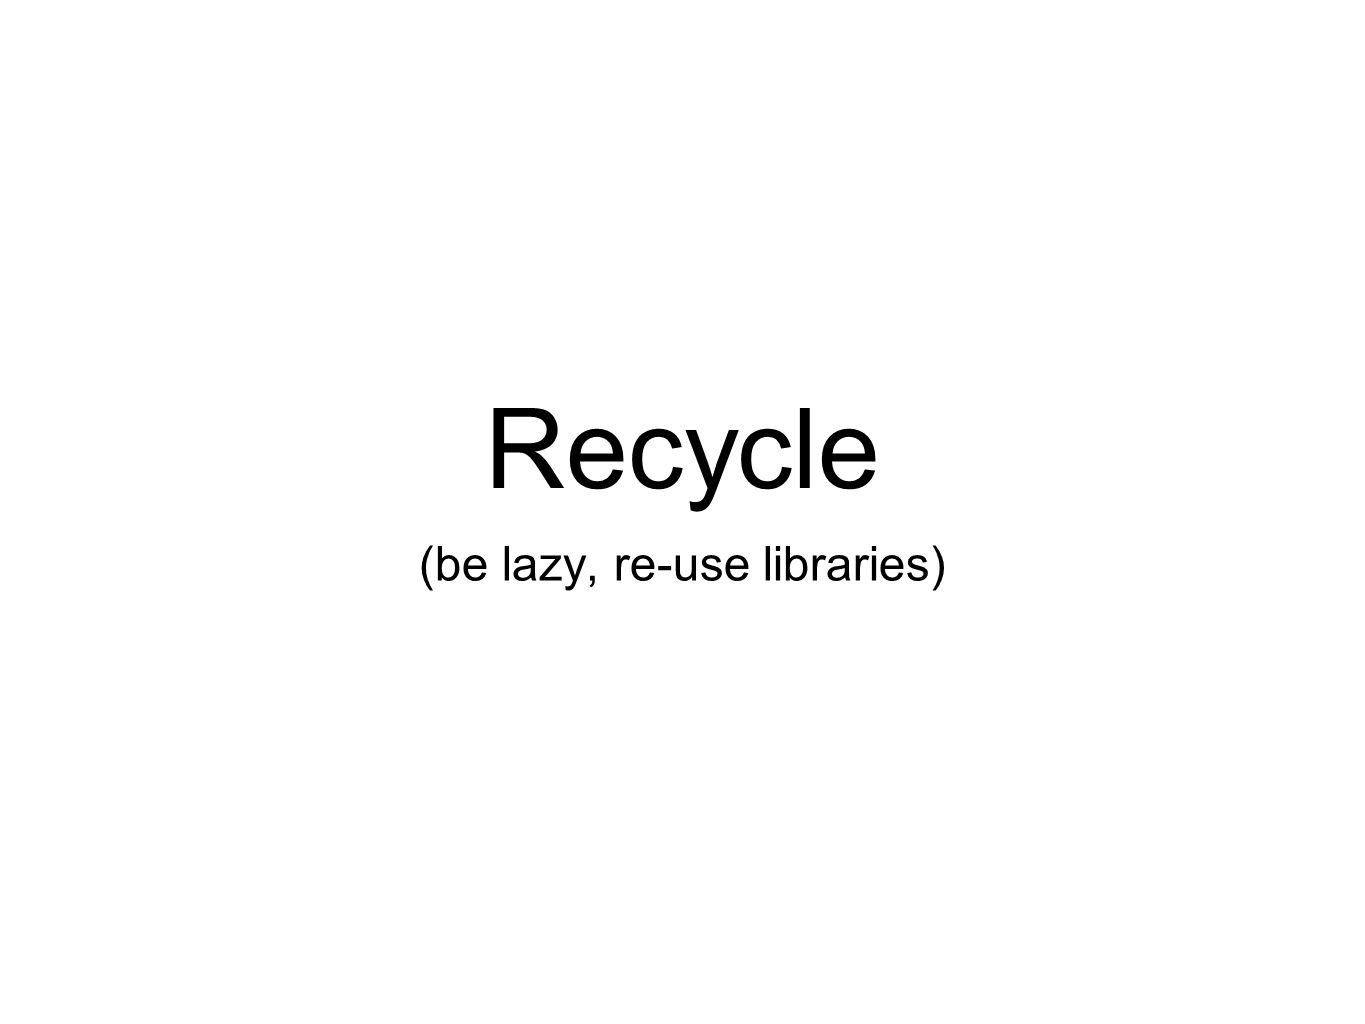 Recycle (be lazy, re-use libraries)